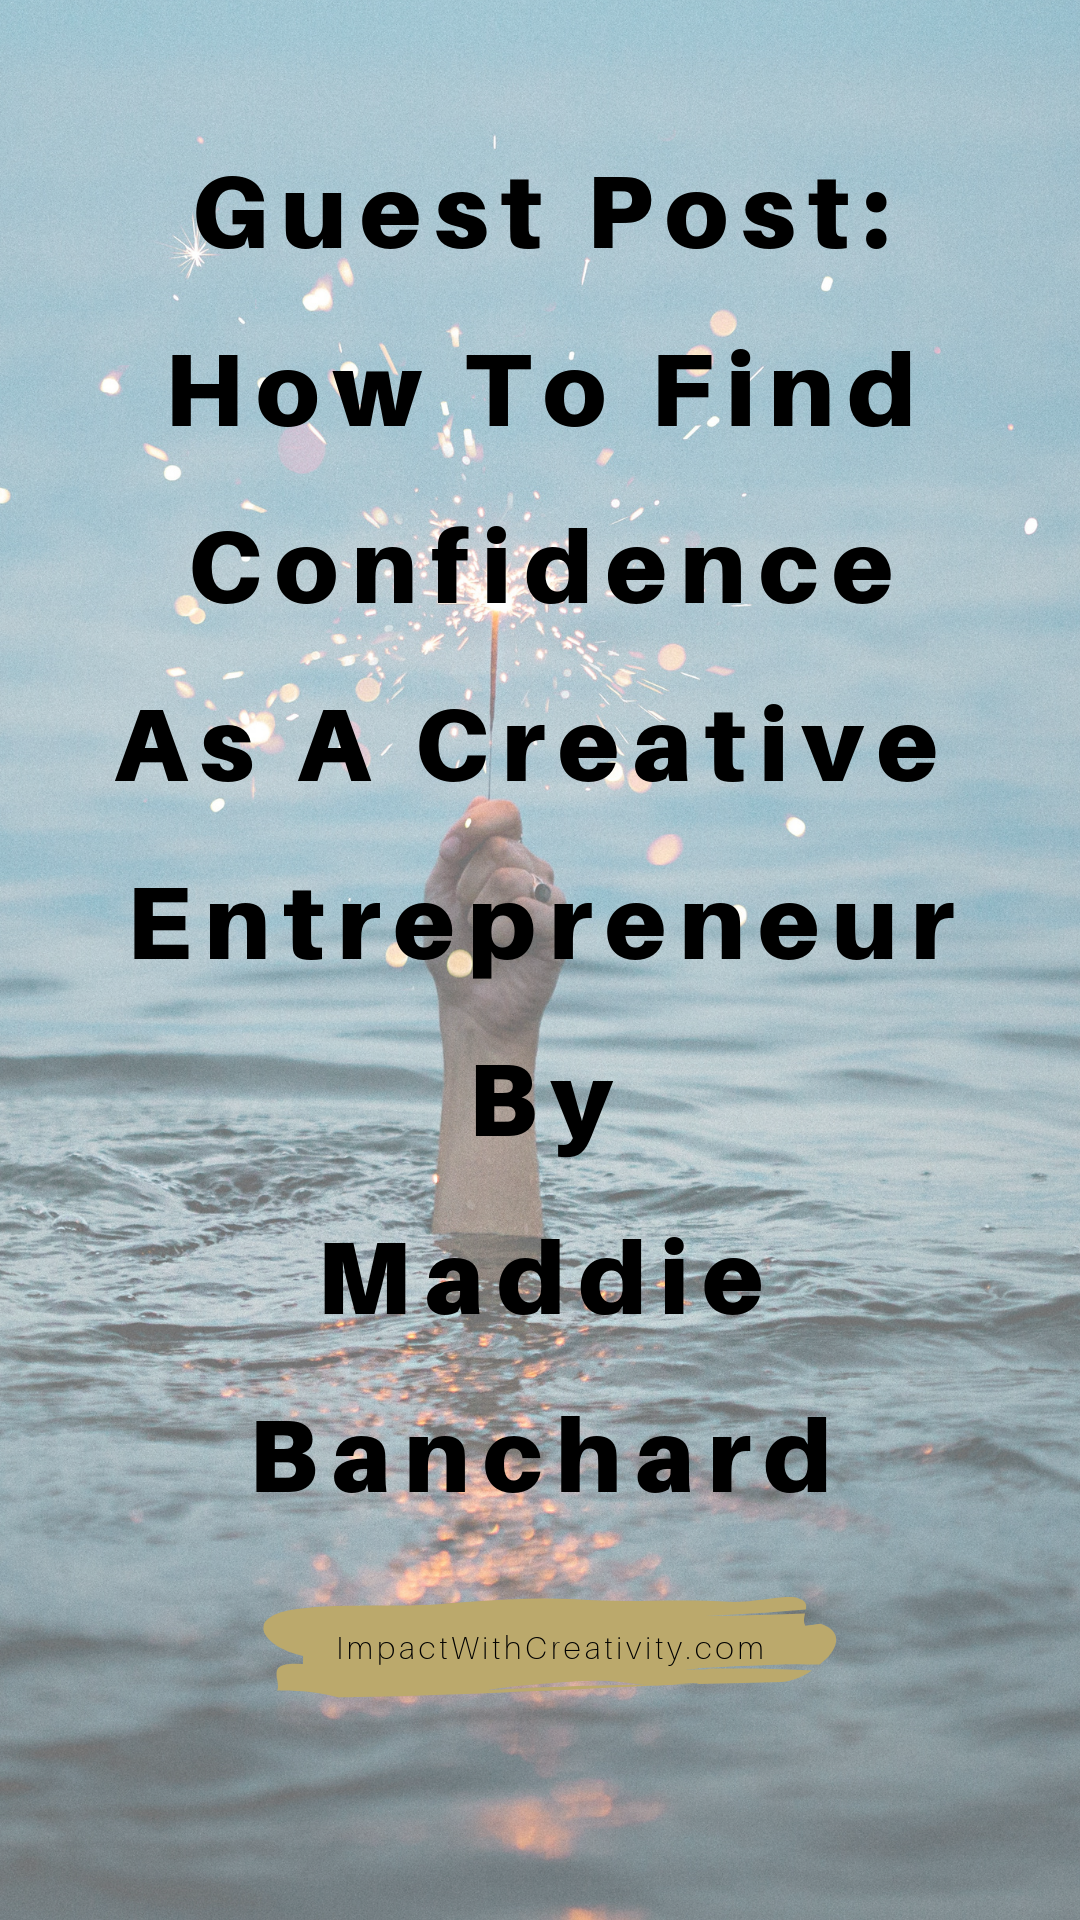 How to find confidence as a creative entrepreneur by Maddie Blanchard